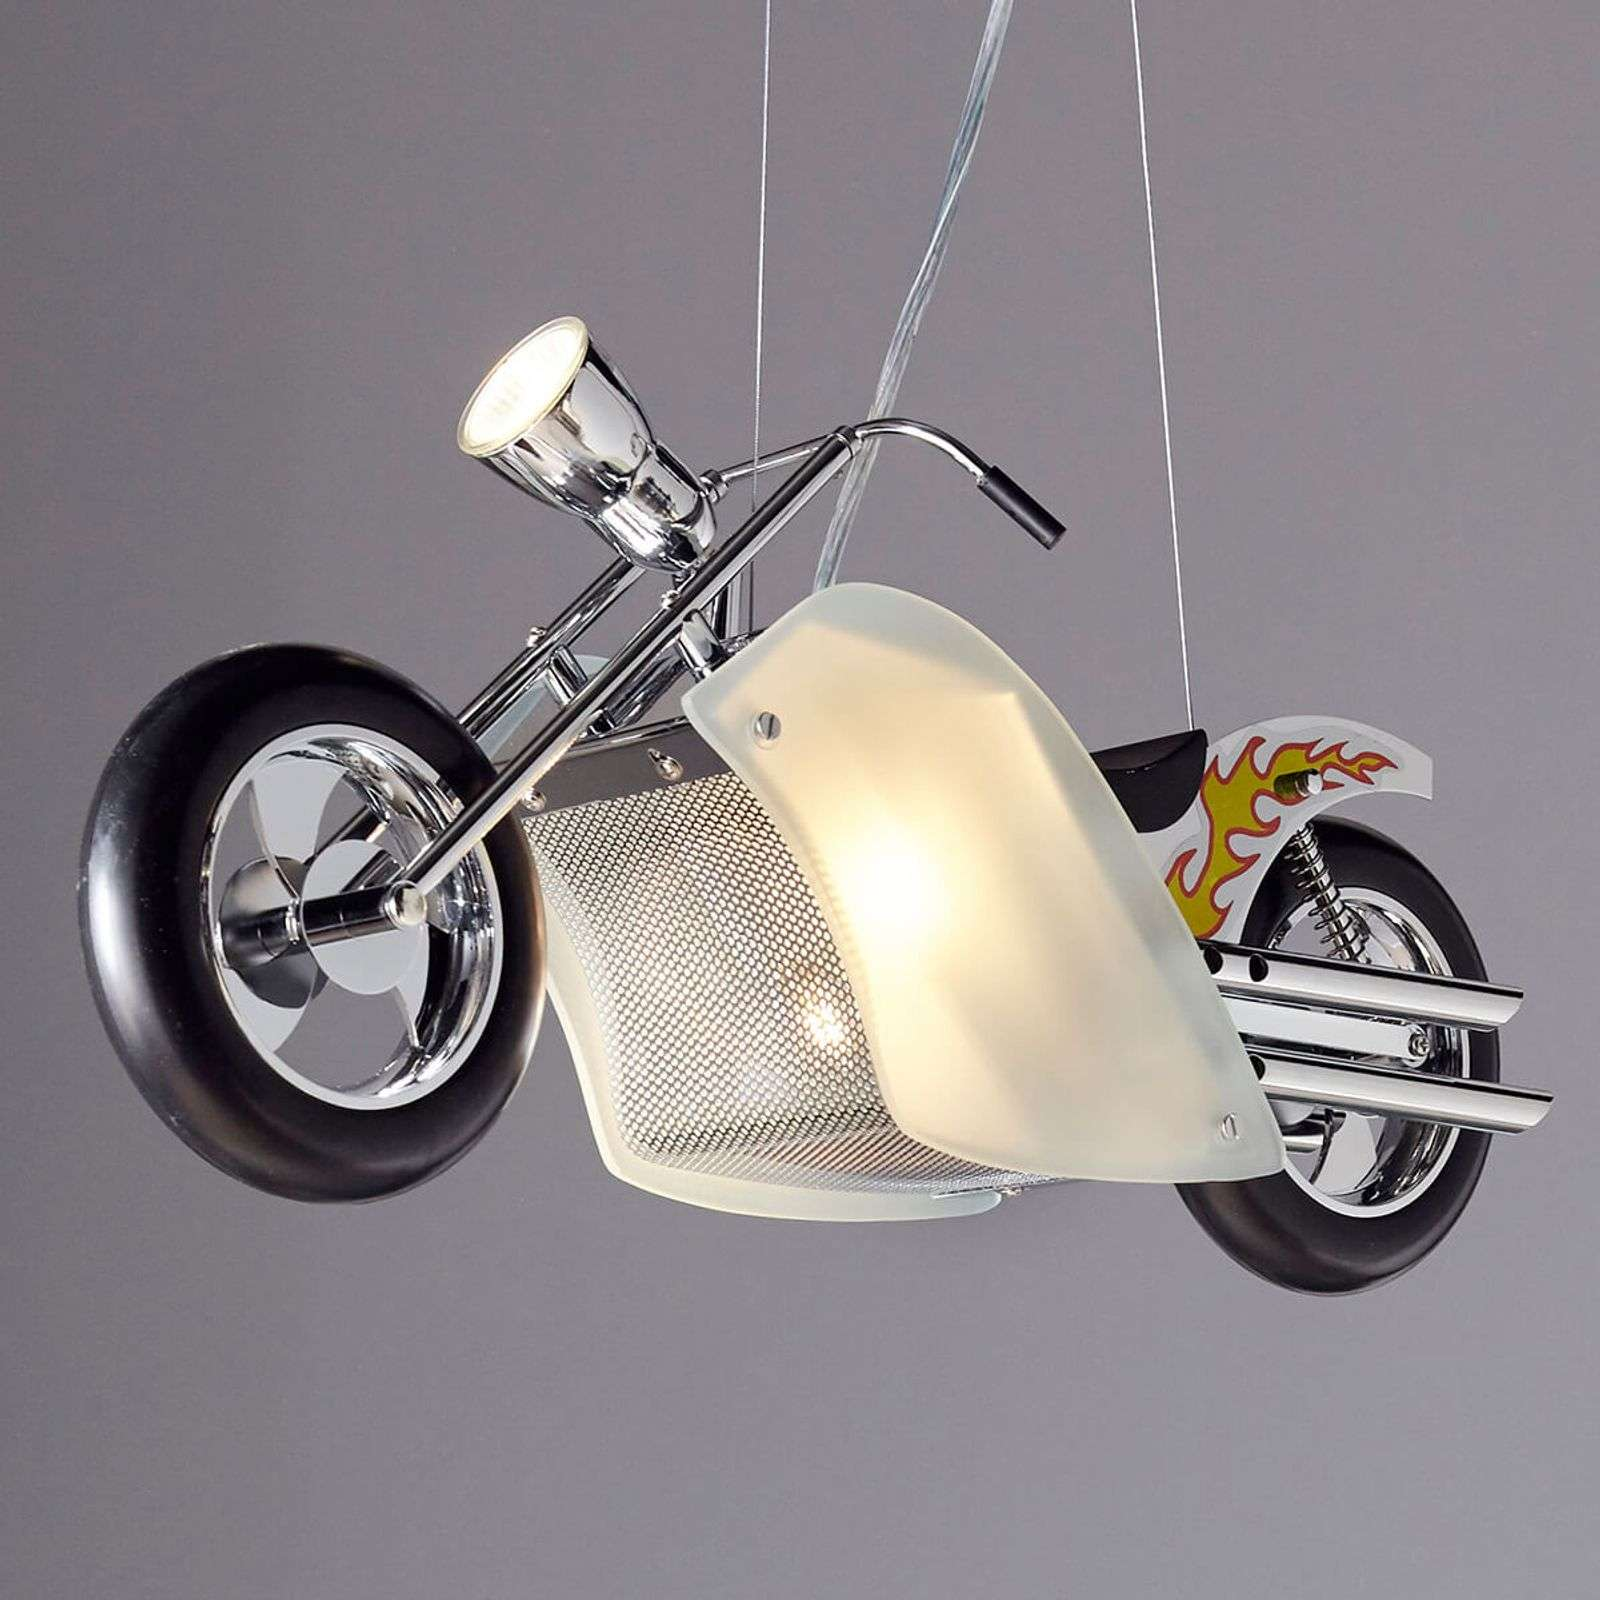 Exceptionnelle suspension Harley